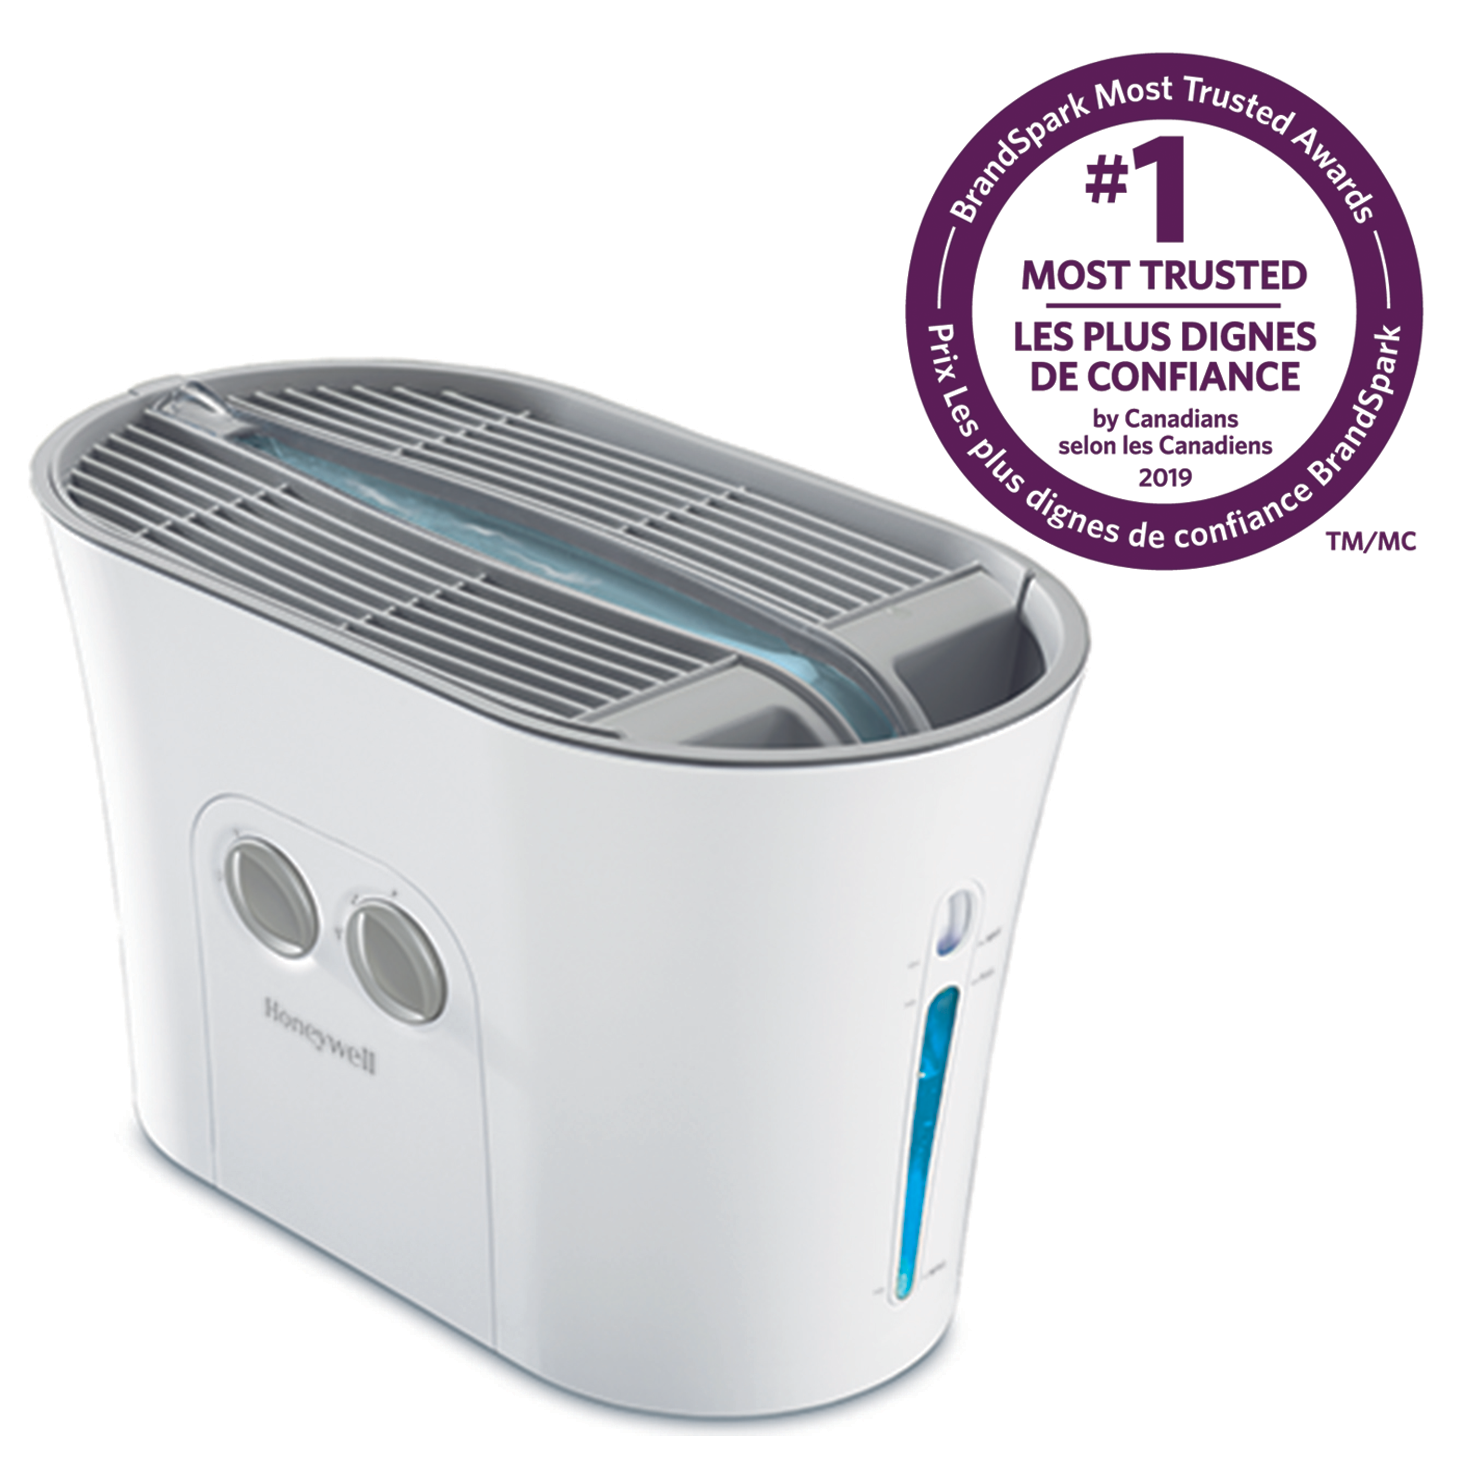 Honeywell HCM750CV1 Top Fill Cool Moisture Humidifier